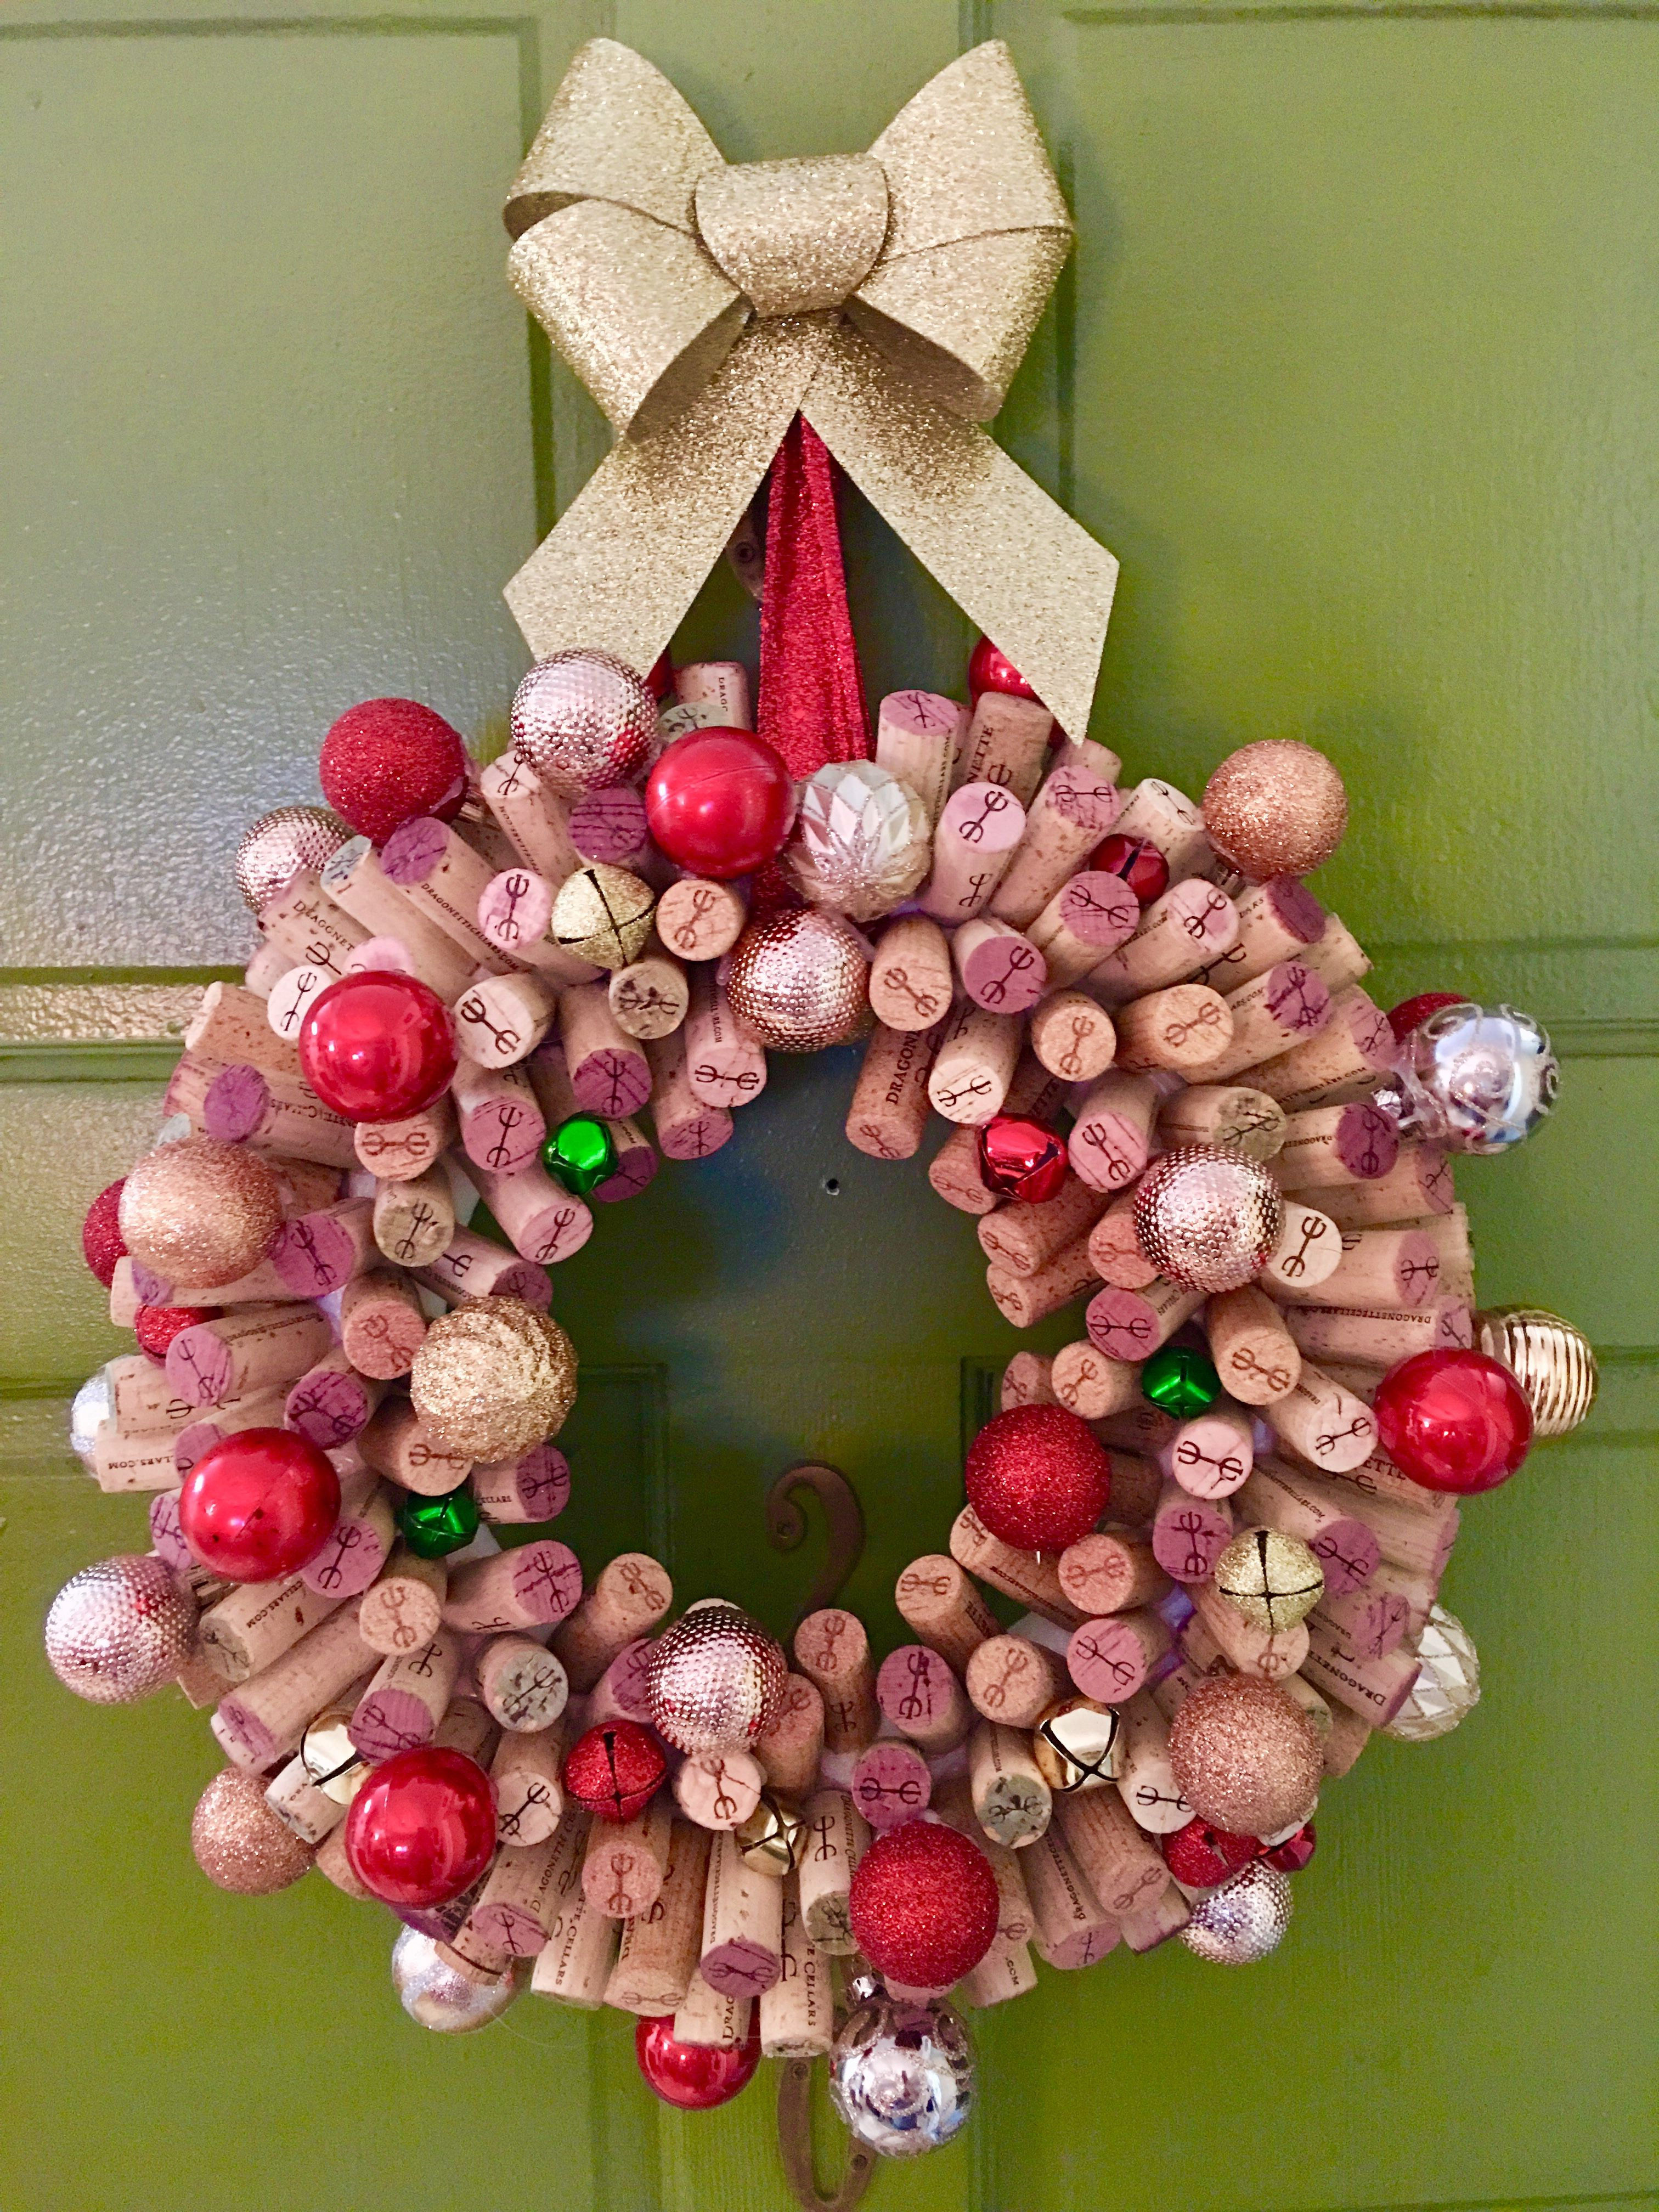 Wine Cork Wreath For Christmas It Took About 2 Hours With An Extra Set Of Hands Wine Cork Crafts Bottle Crafts Wine Bottle Crafts